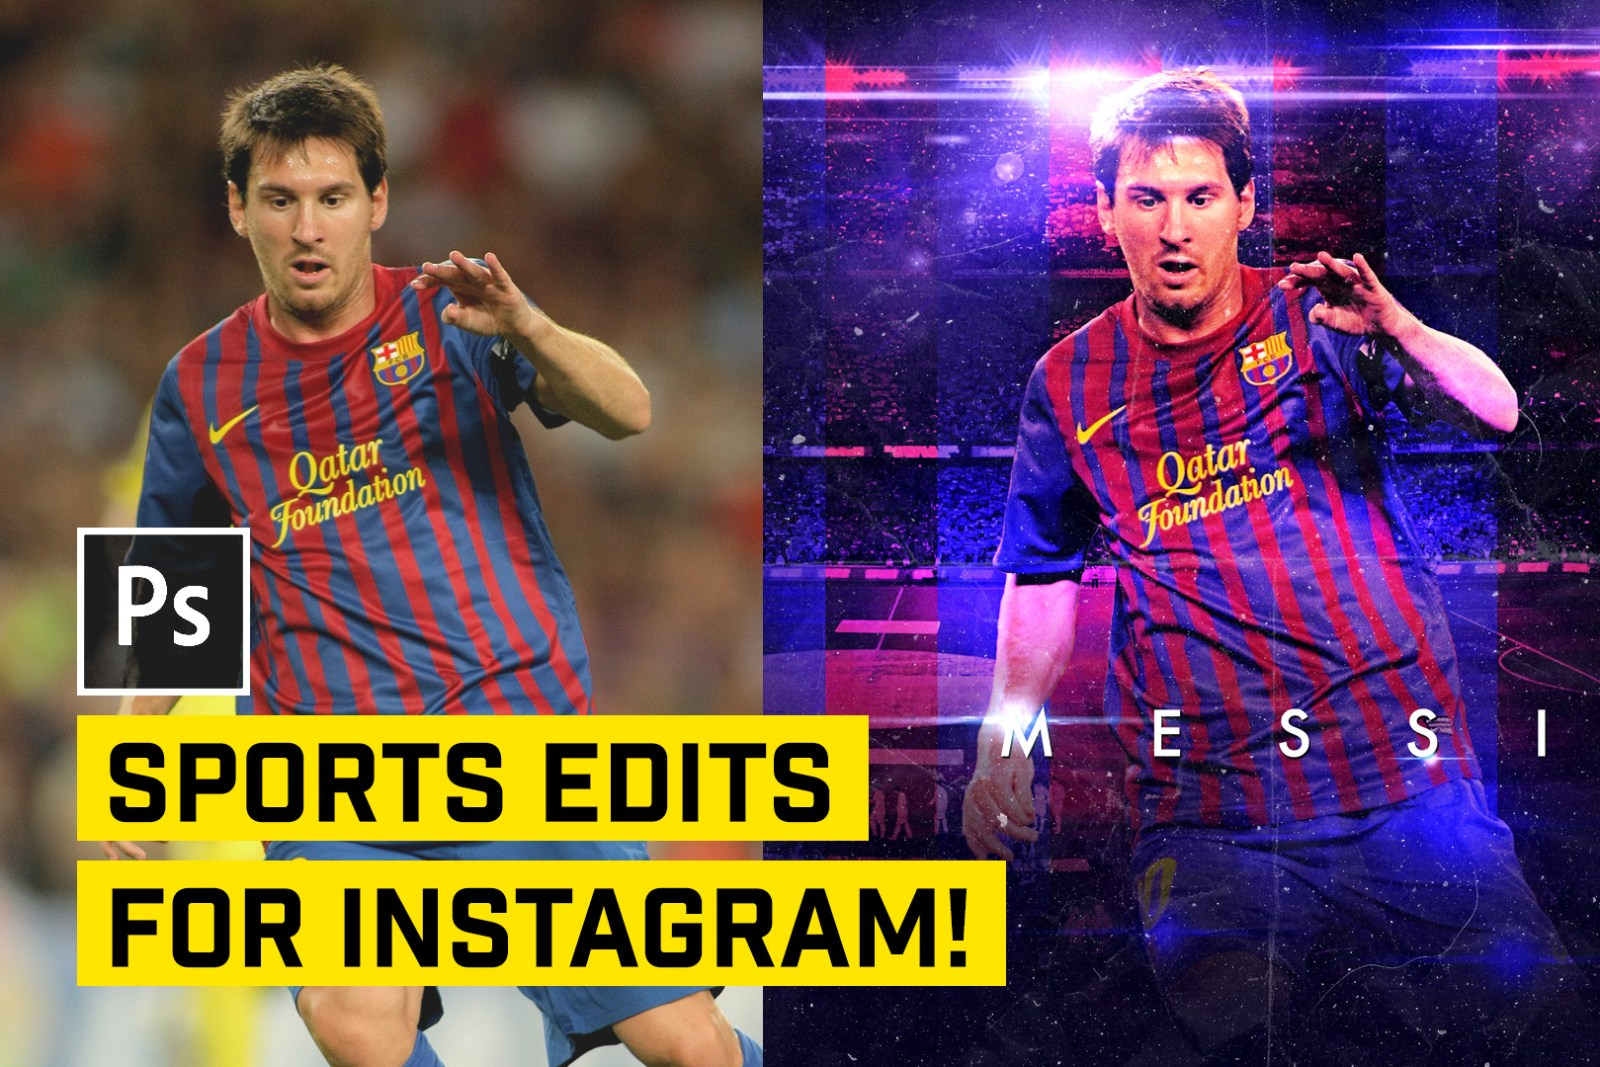 sports edits in photoshop for instagram tutorial